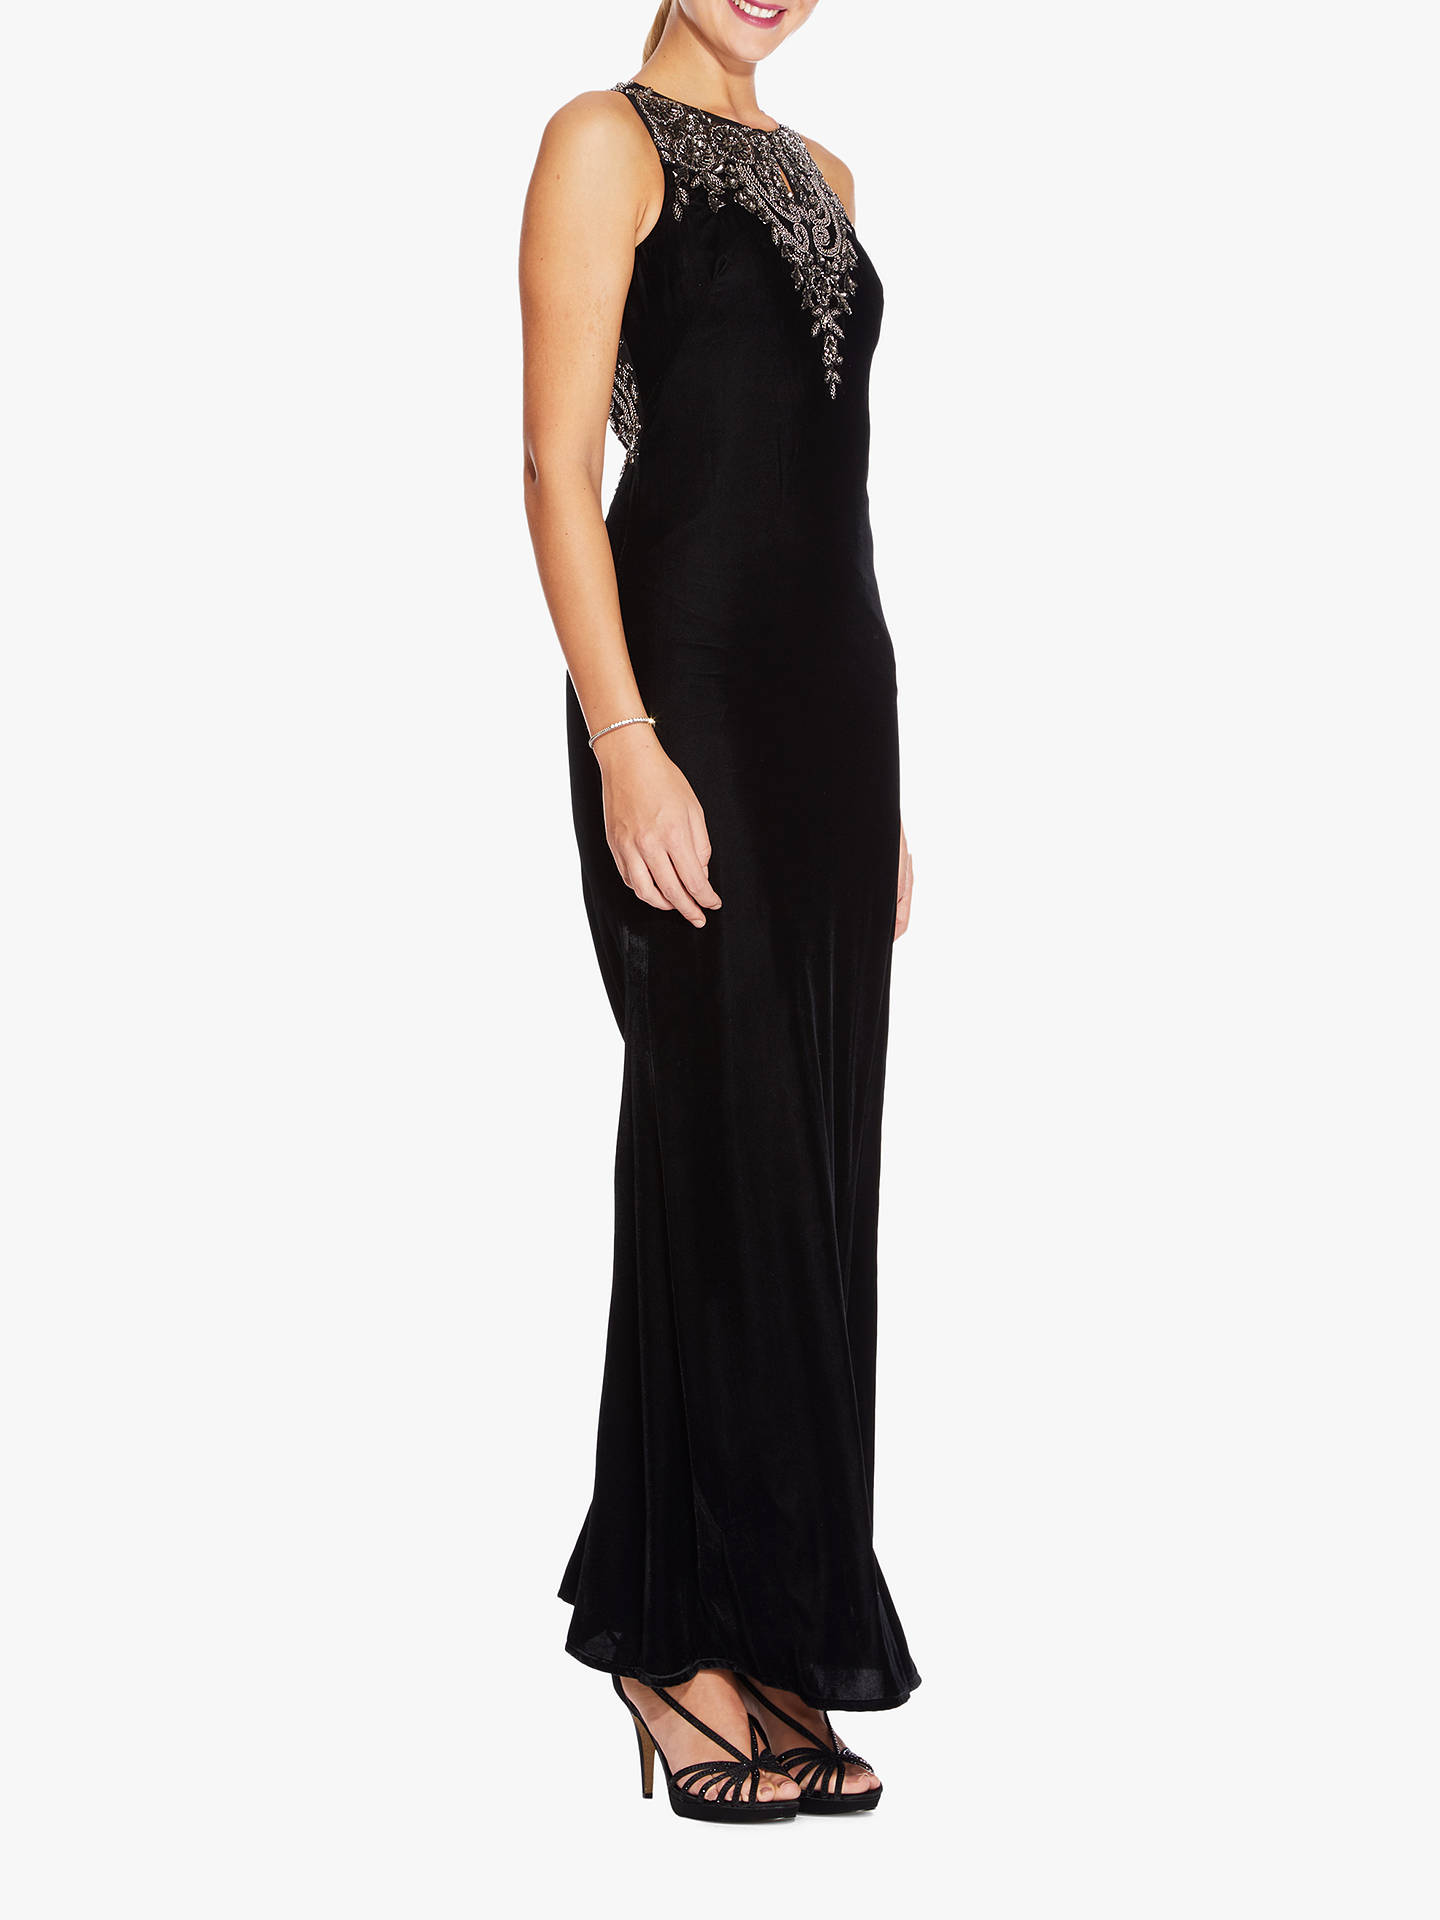 BuyAdrianna Papell Beaded Long Dress, Black/Mercury, 12 Online at johnlewis.com